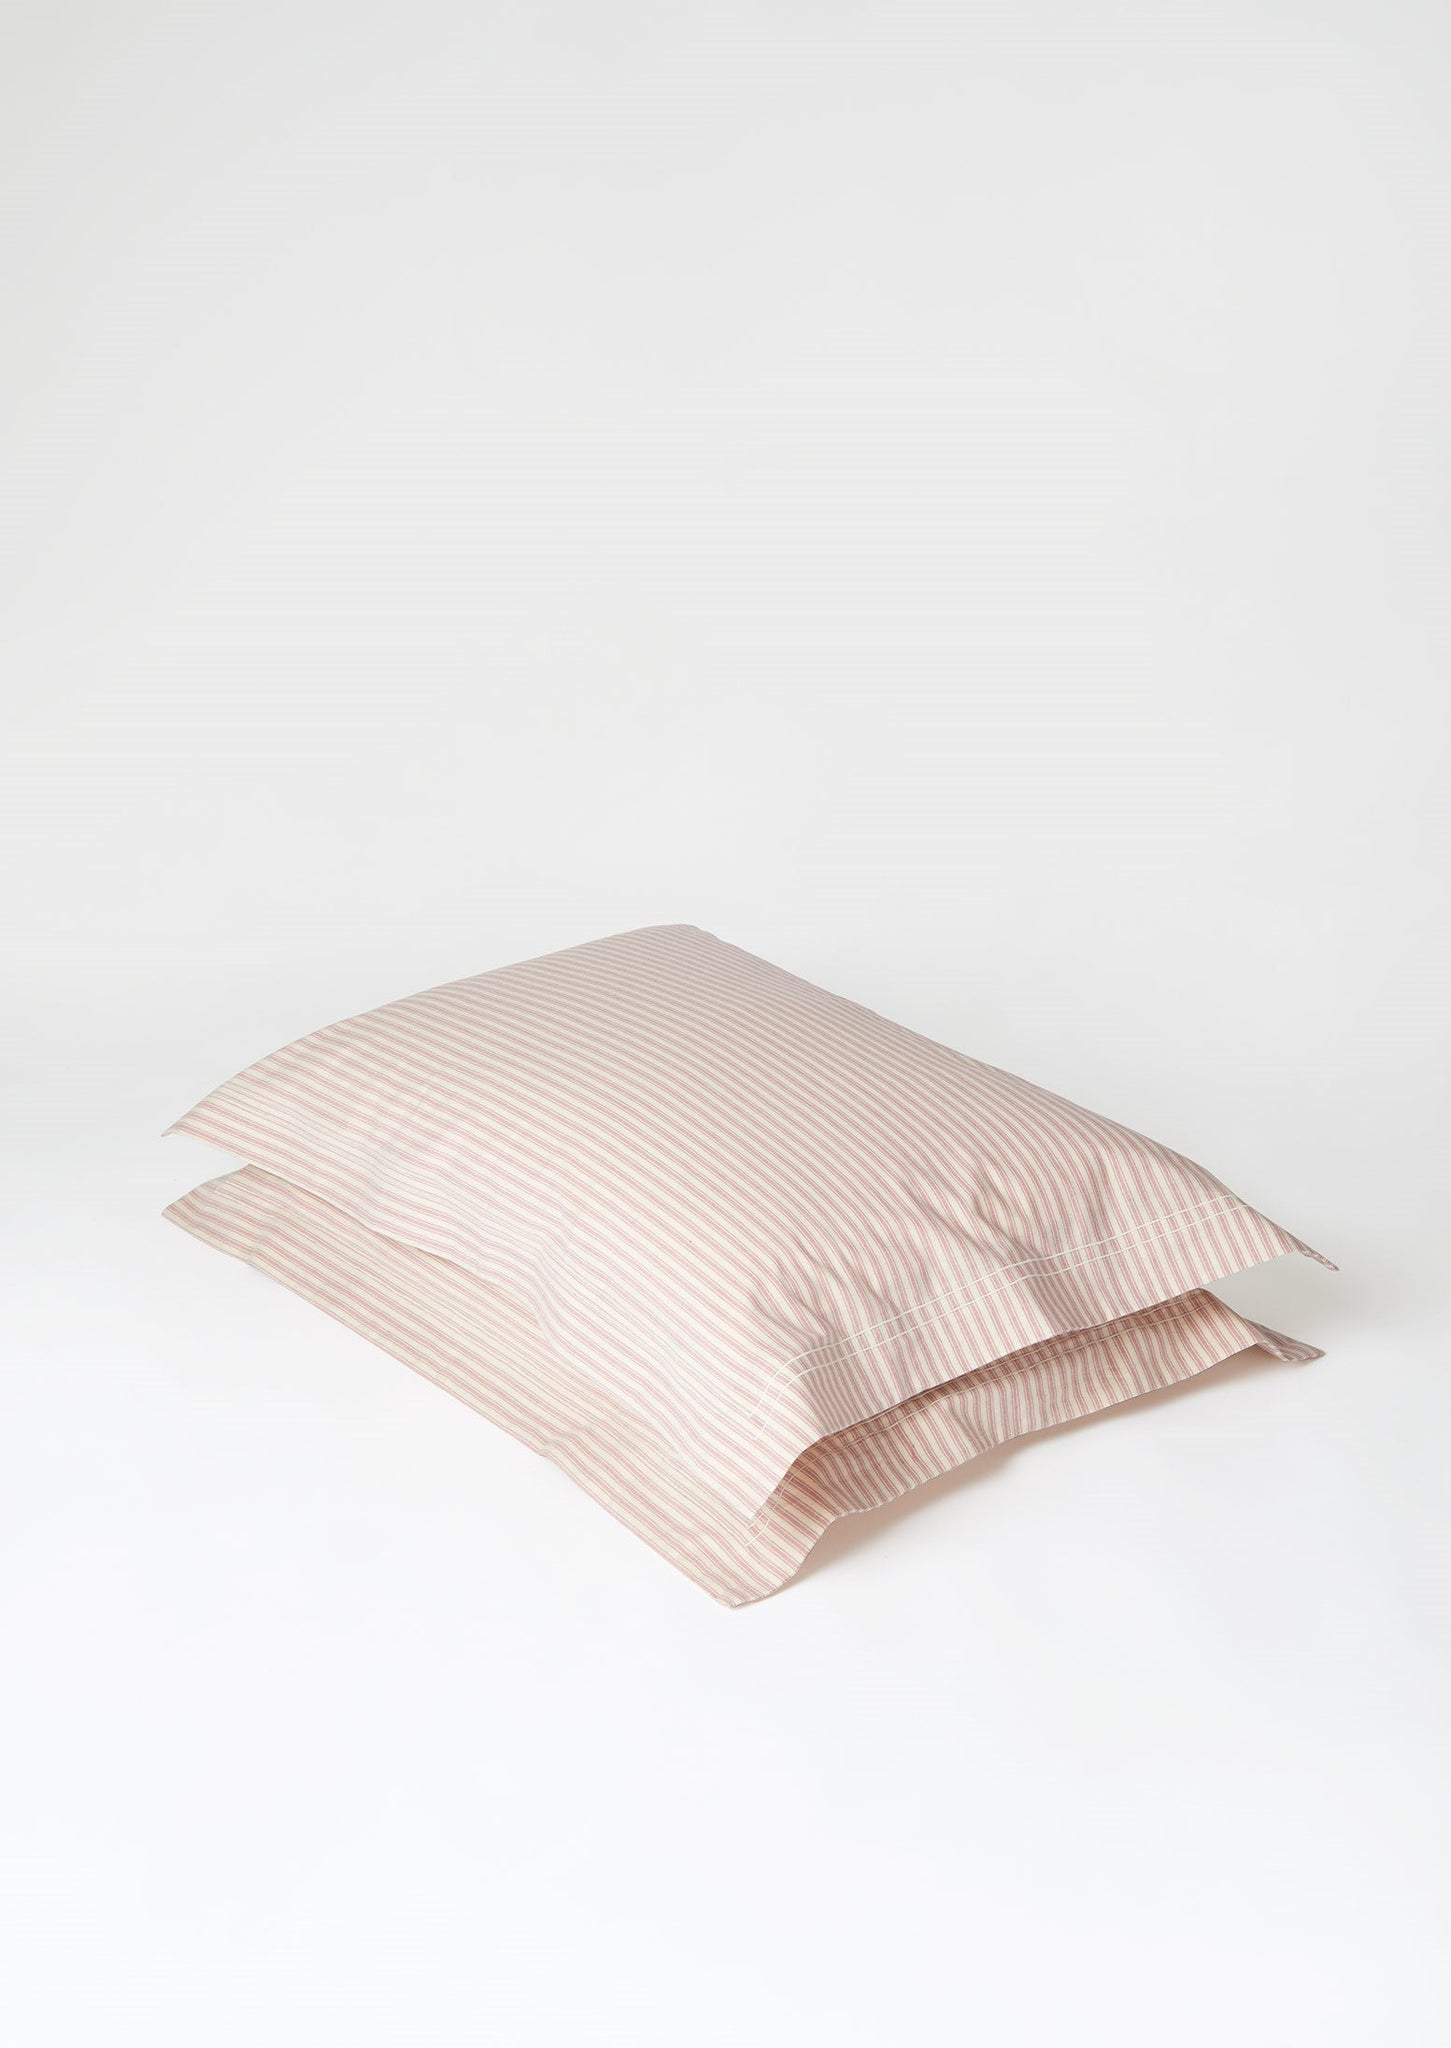 Organic Cotton Ticking Stripe Pillowcase | Ecru/Rose  ?id=27947028512802